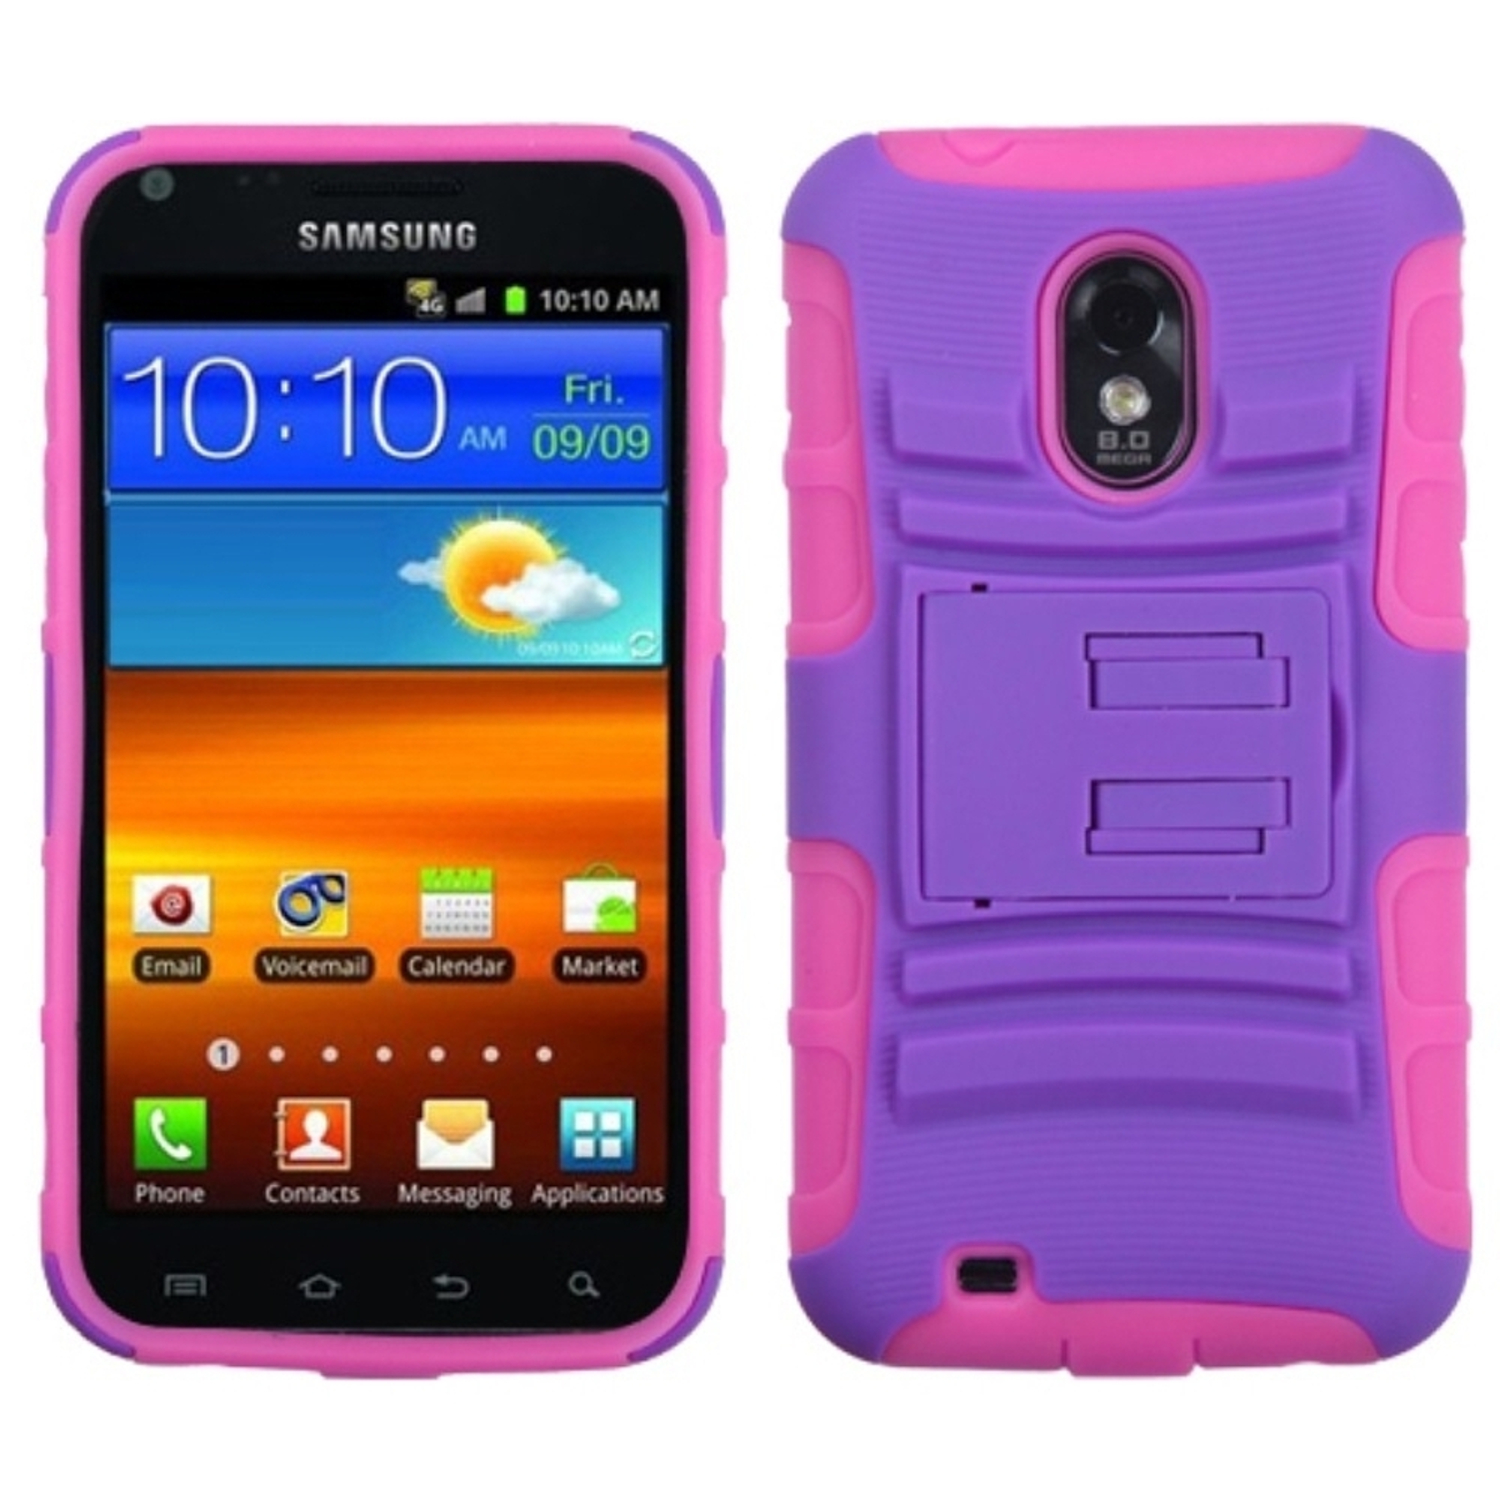 Insten Purple/Electric Pink Advanced Armor Stand Case for SAMSUNG D710 (Epic 4G Touch) R760 (Galaxy S II) S2 4G